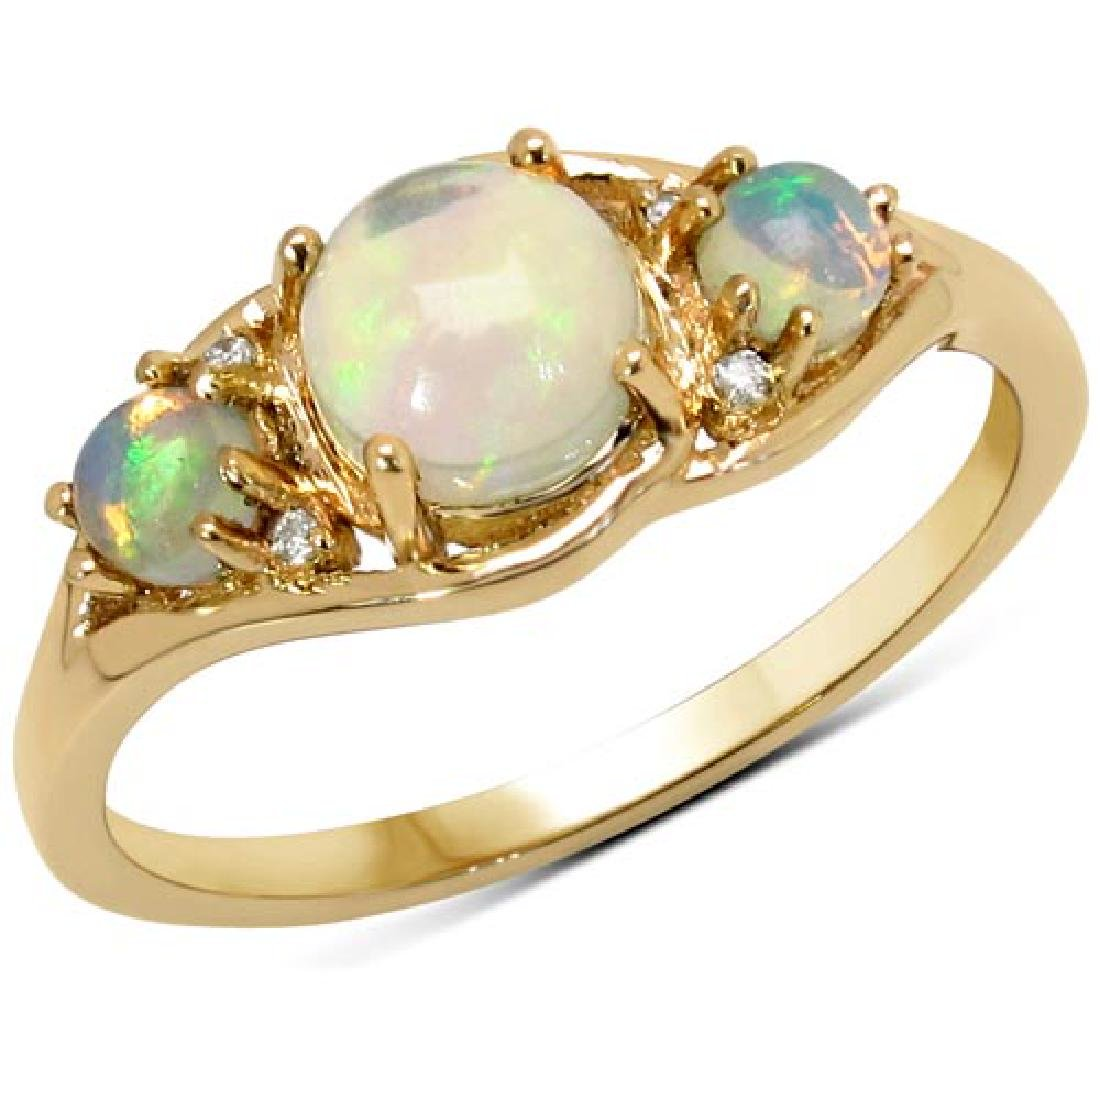 0.68 Carat Genuine Ethiopian Opal and White Diamond 14K